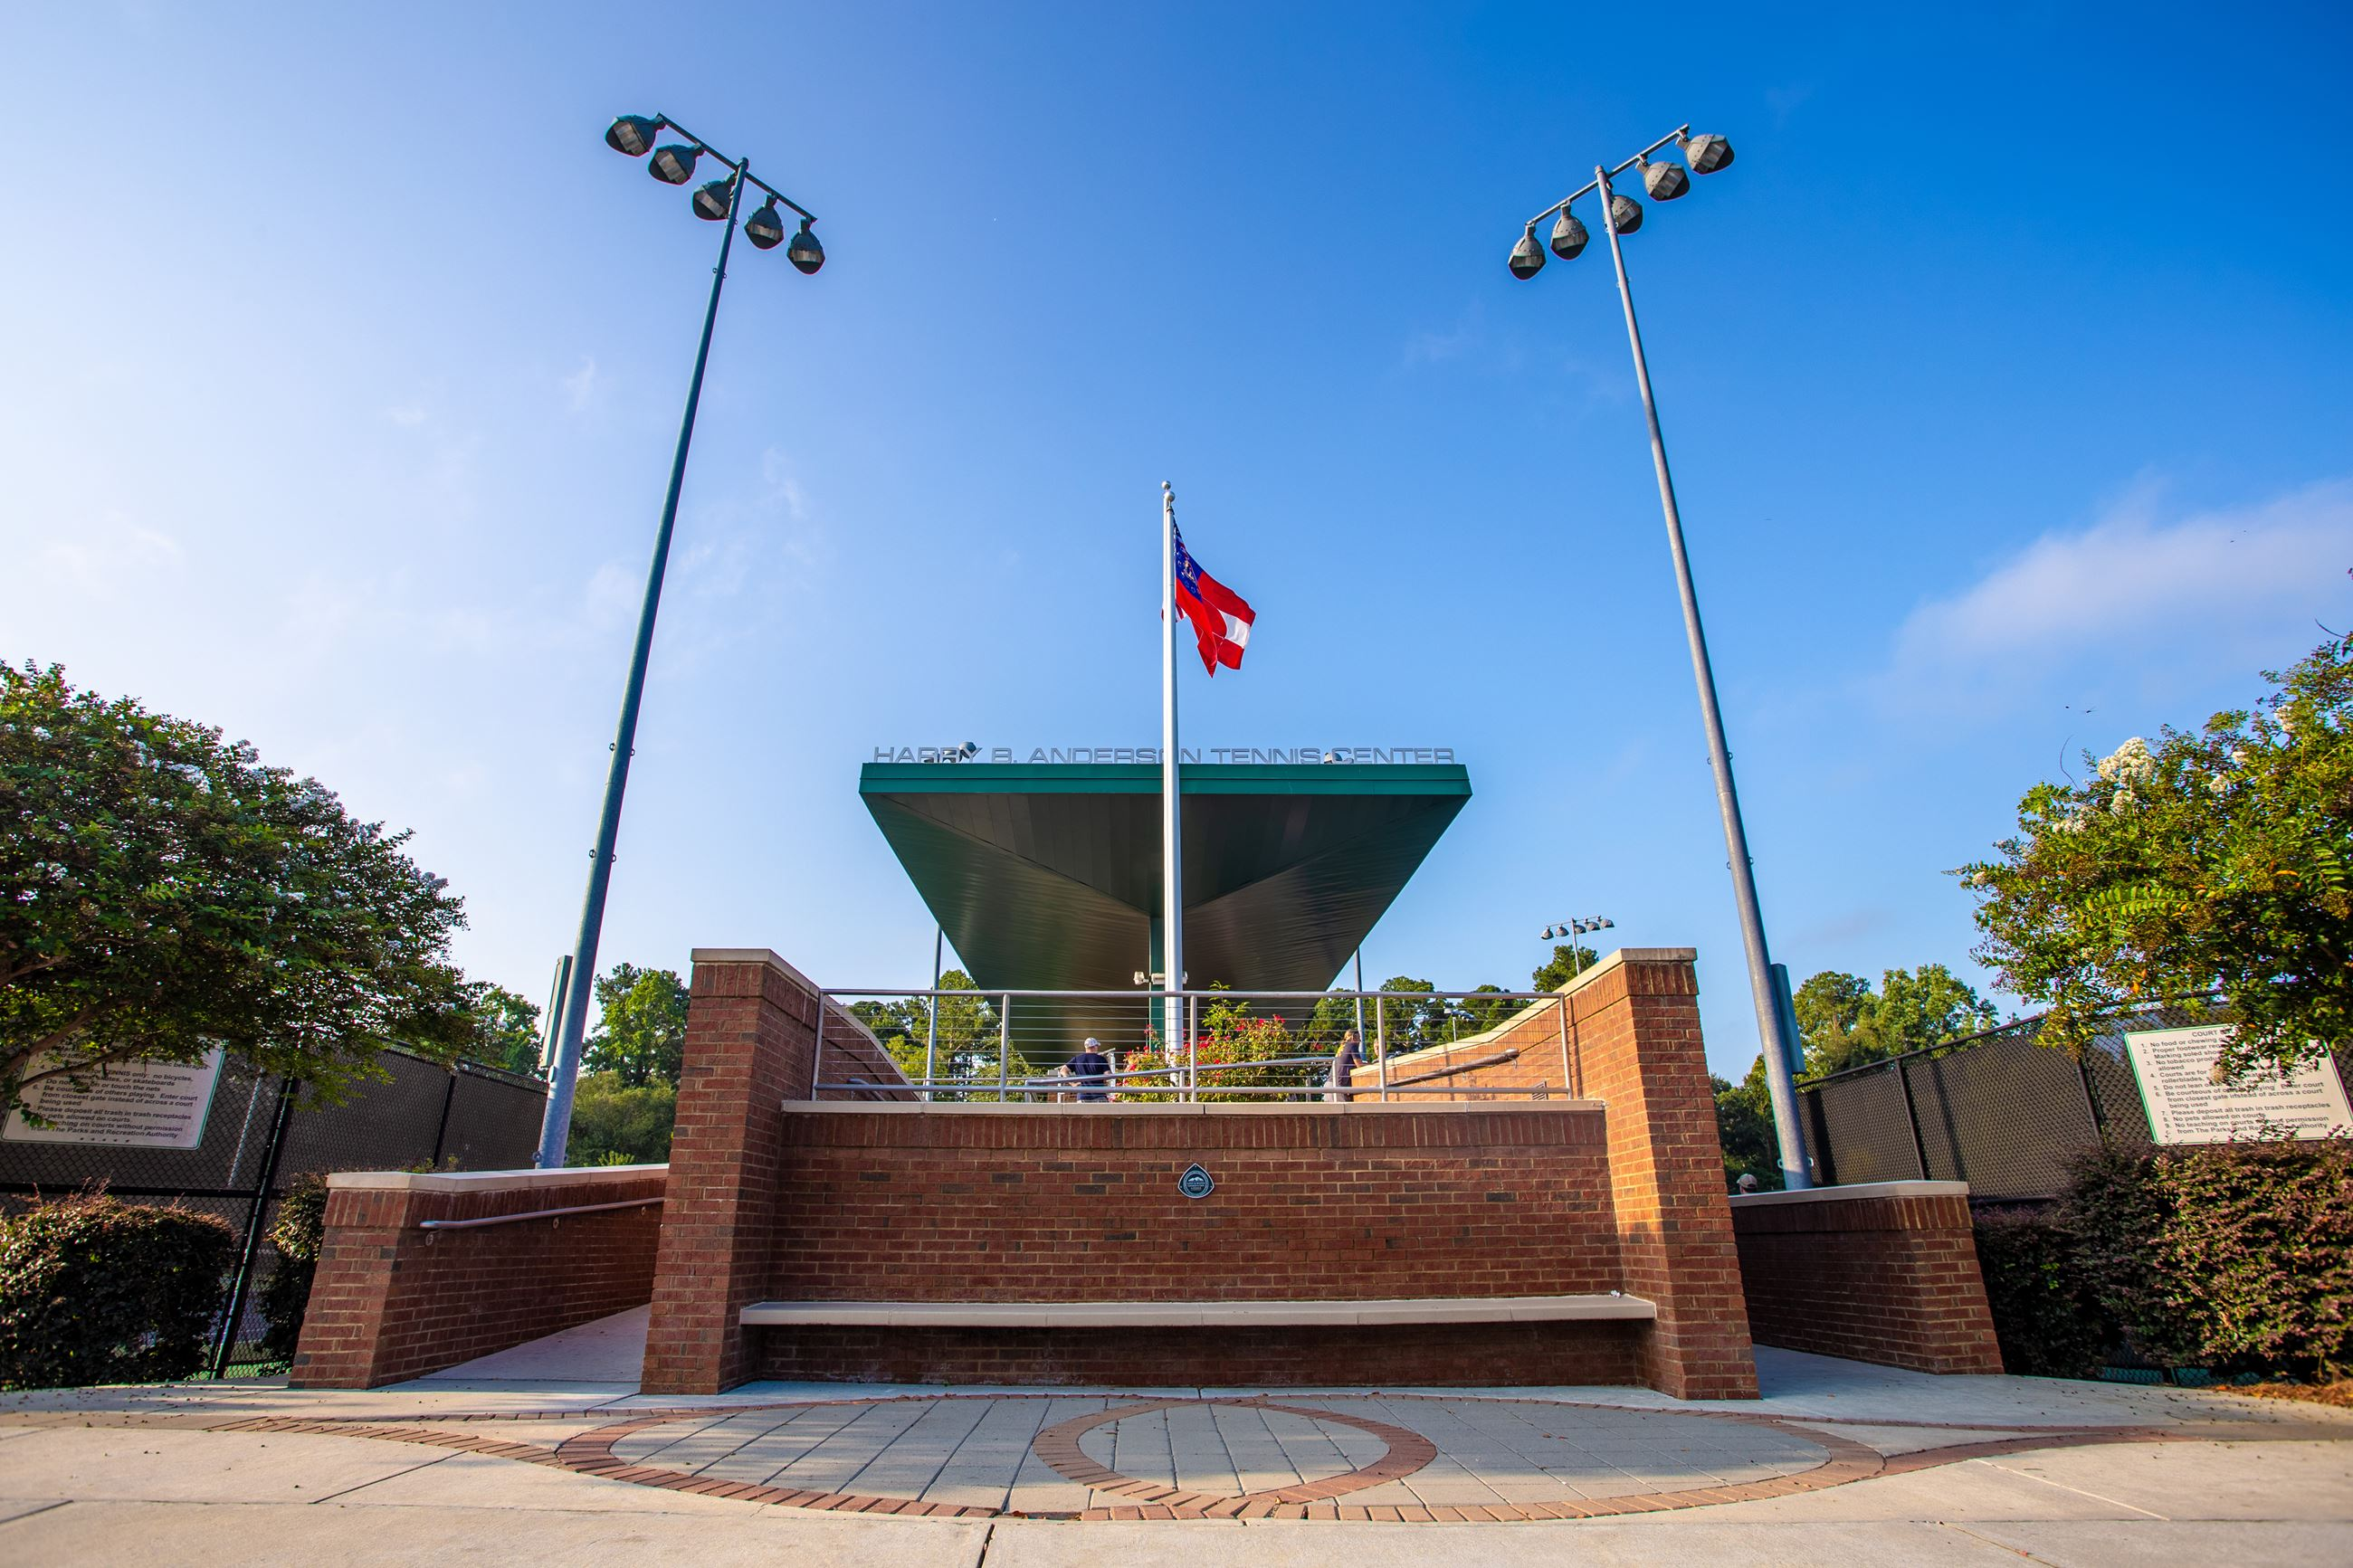 An image of the front entrance of a tennis center with a brick wall and an American flag.